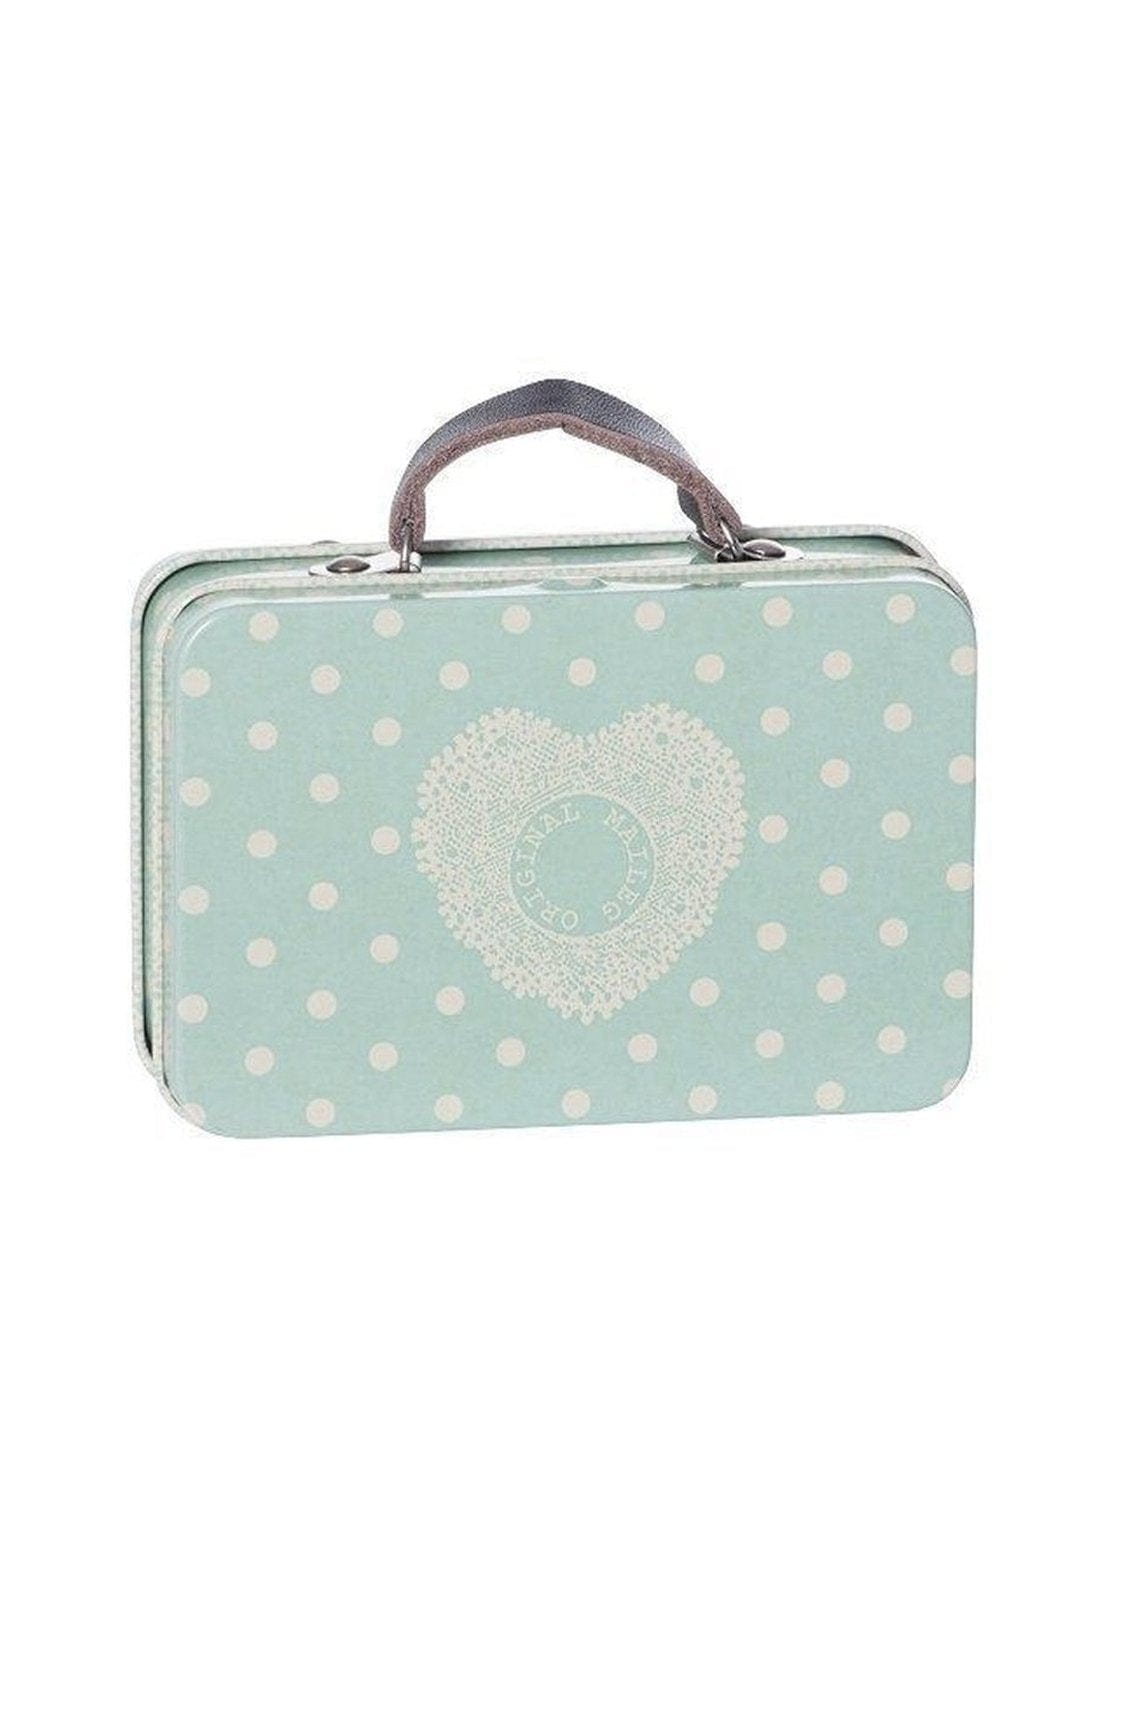 Maileg Metal Suitcase blue big dots - Hello Little Birdie